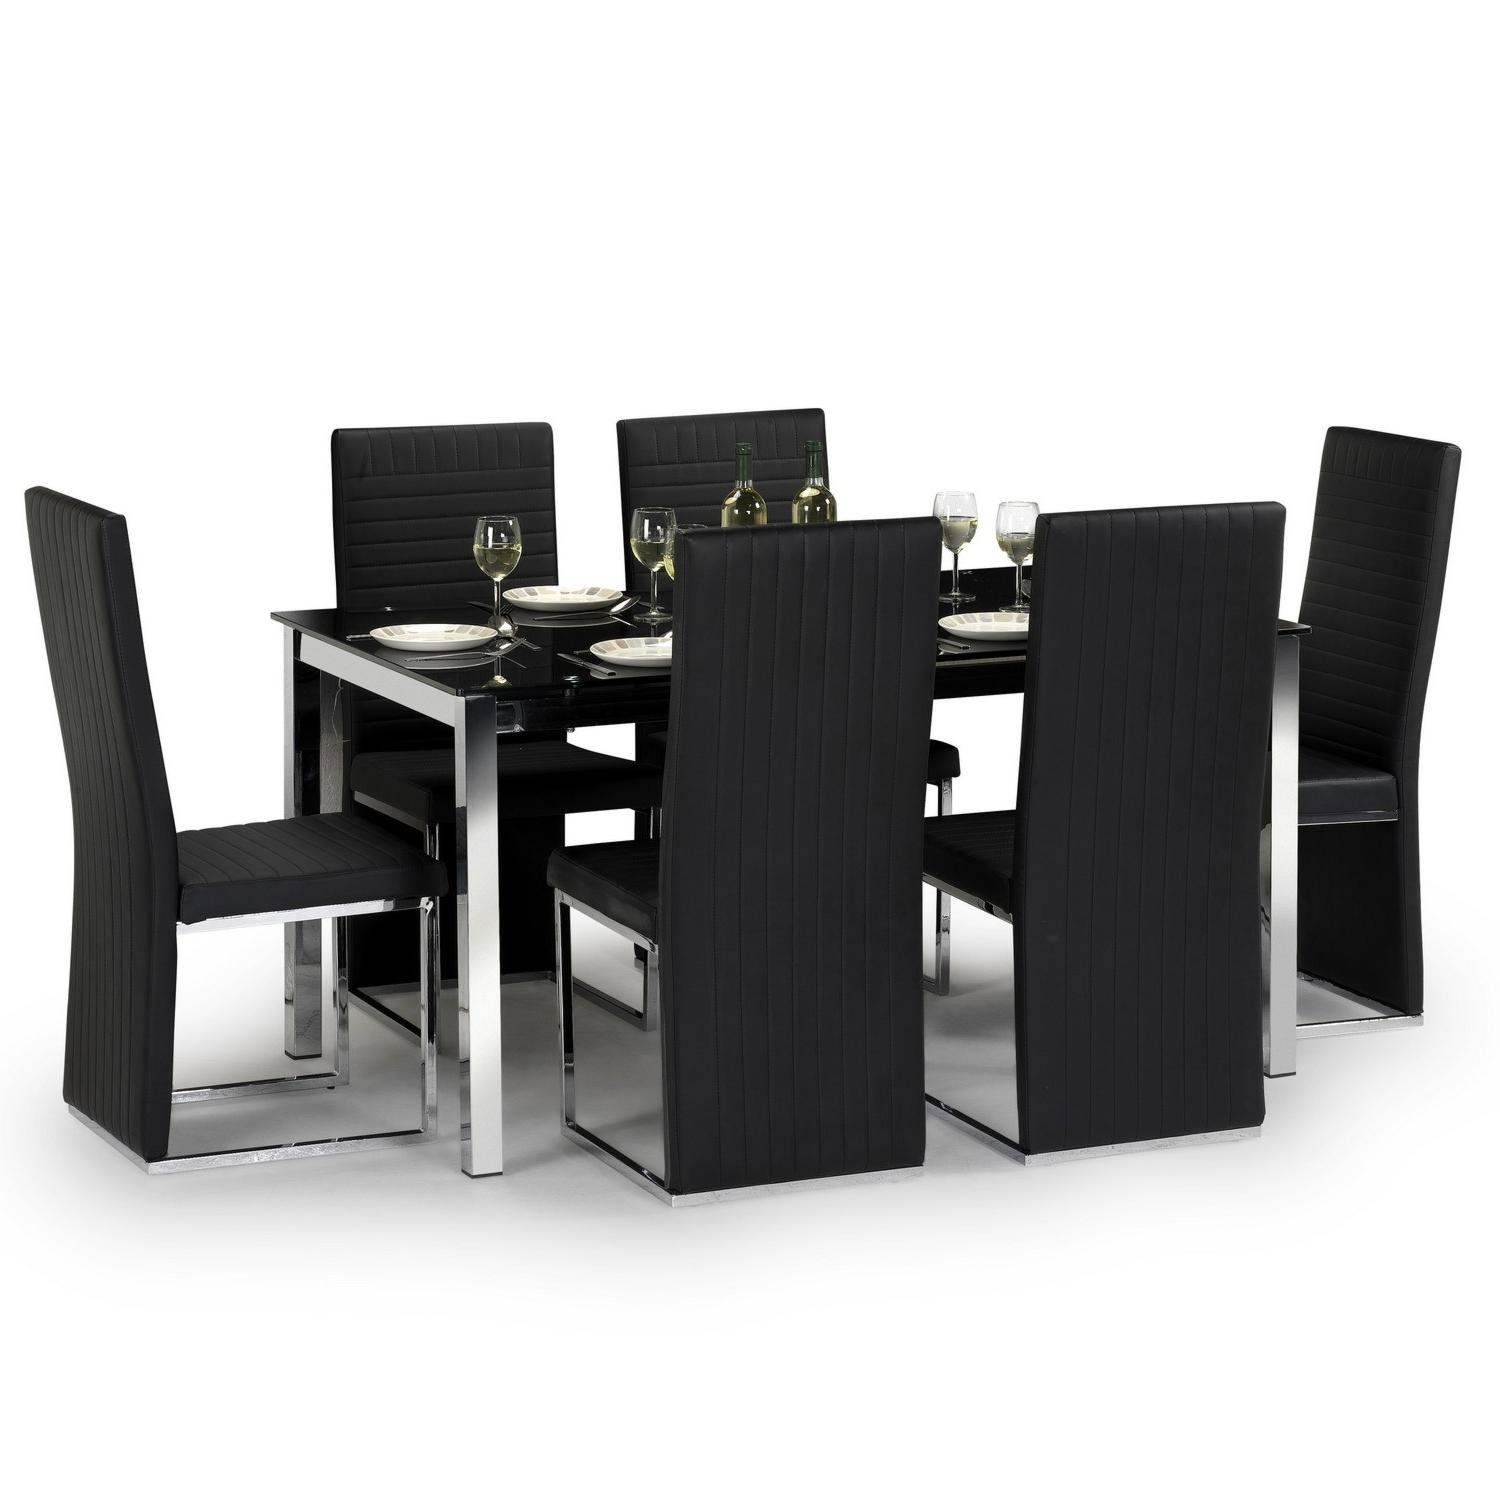 Tempo Dining Table And 6 Chairs Within Most Recent Dining Tables With 6 Chairs (View 19 of 25)